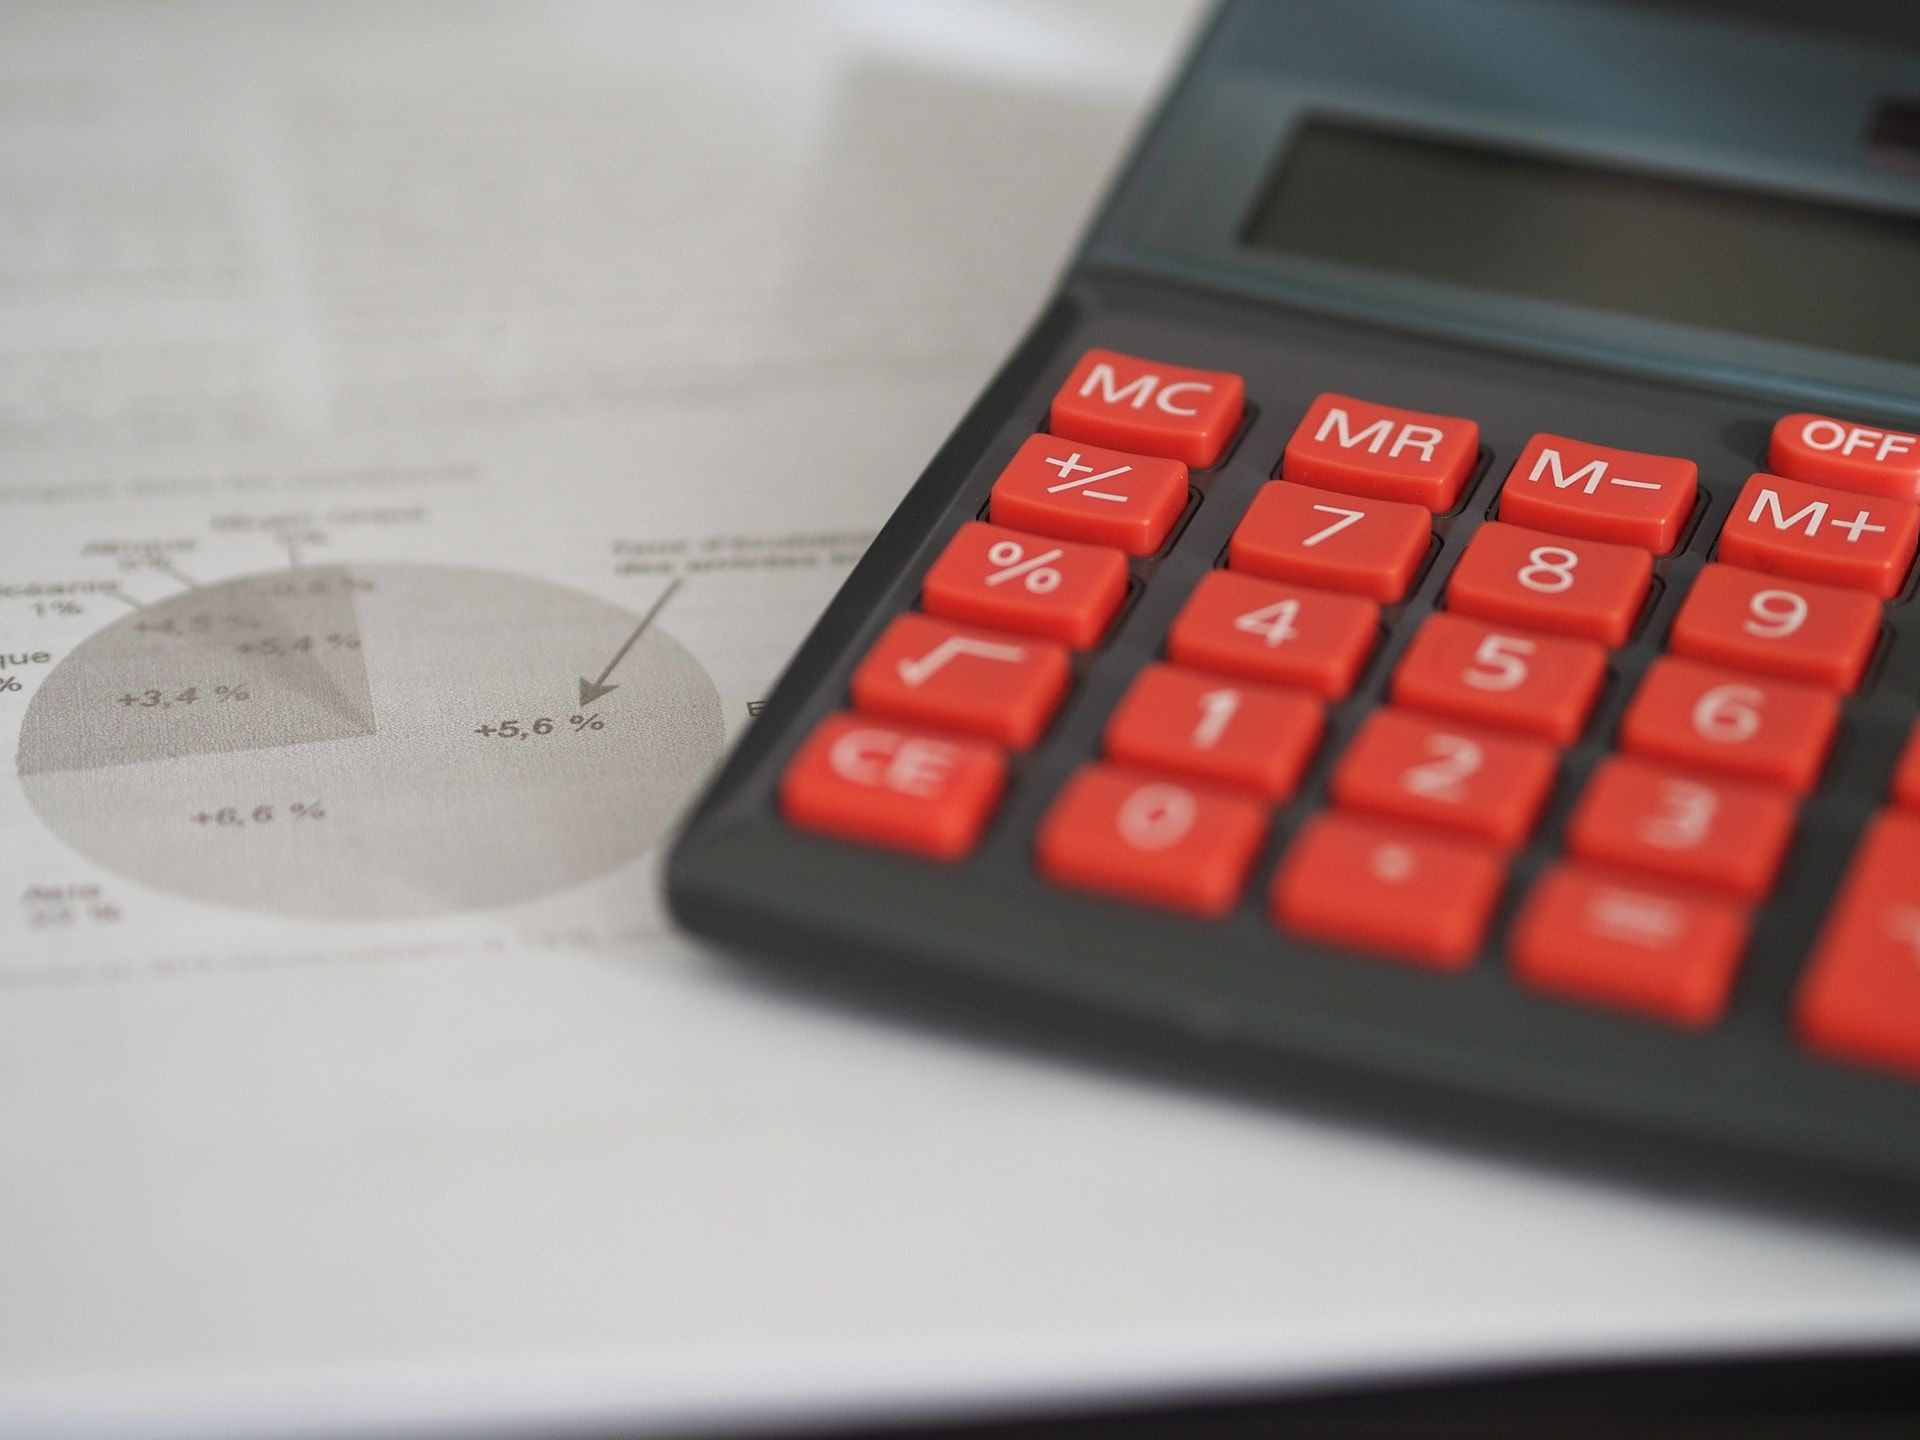 Psntax is a CPA Firm specializing in best Accounting, Tax